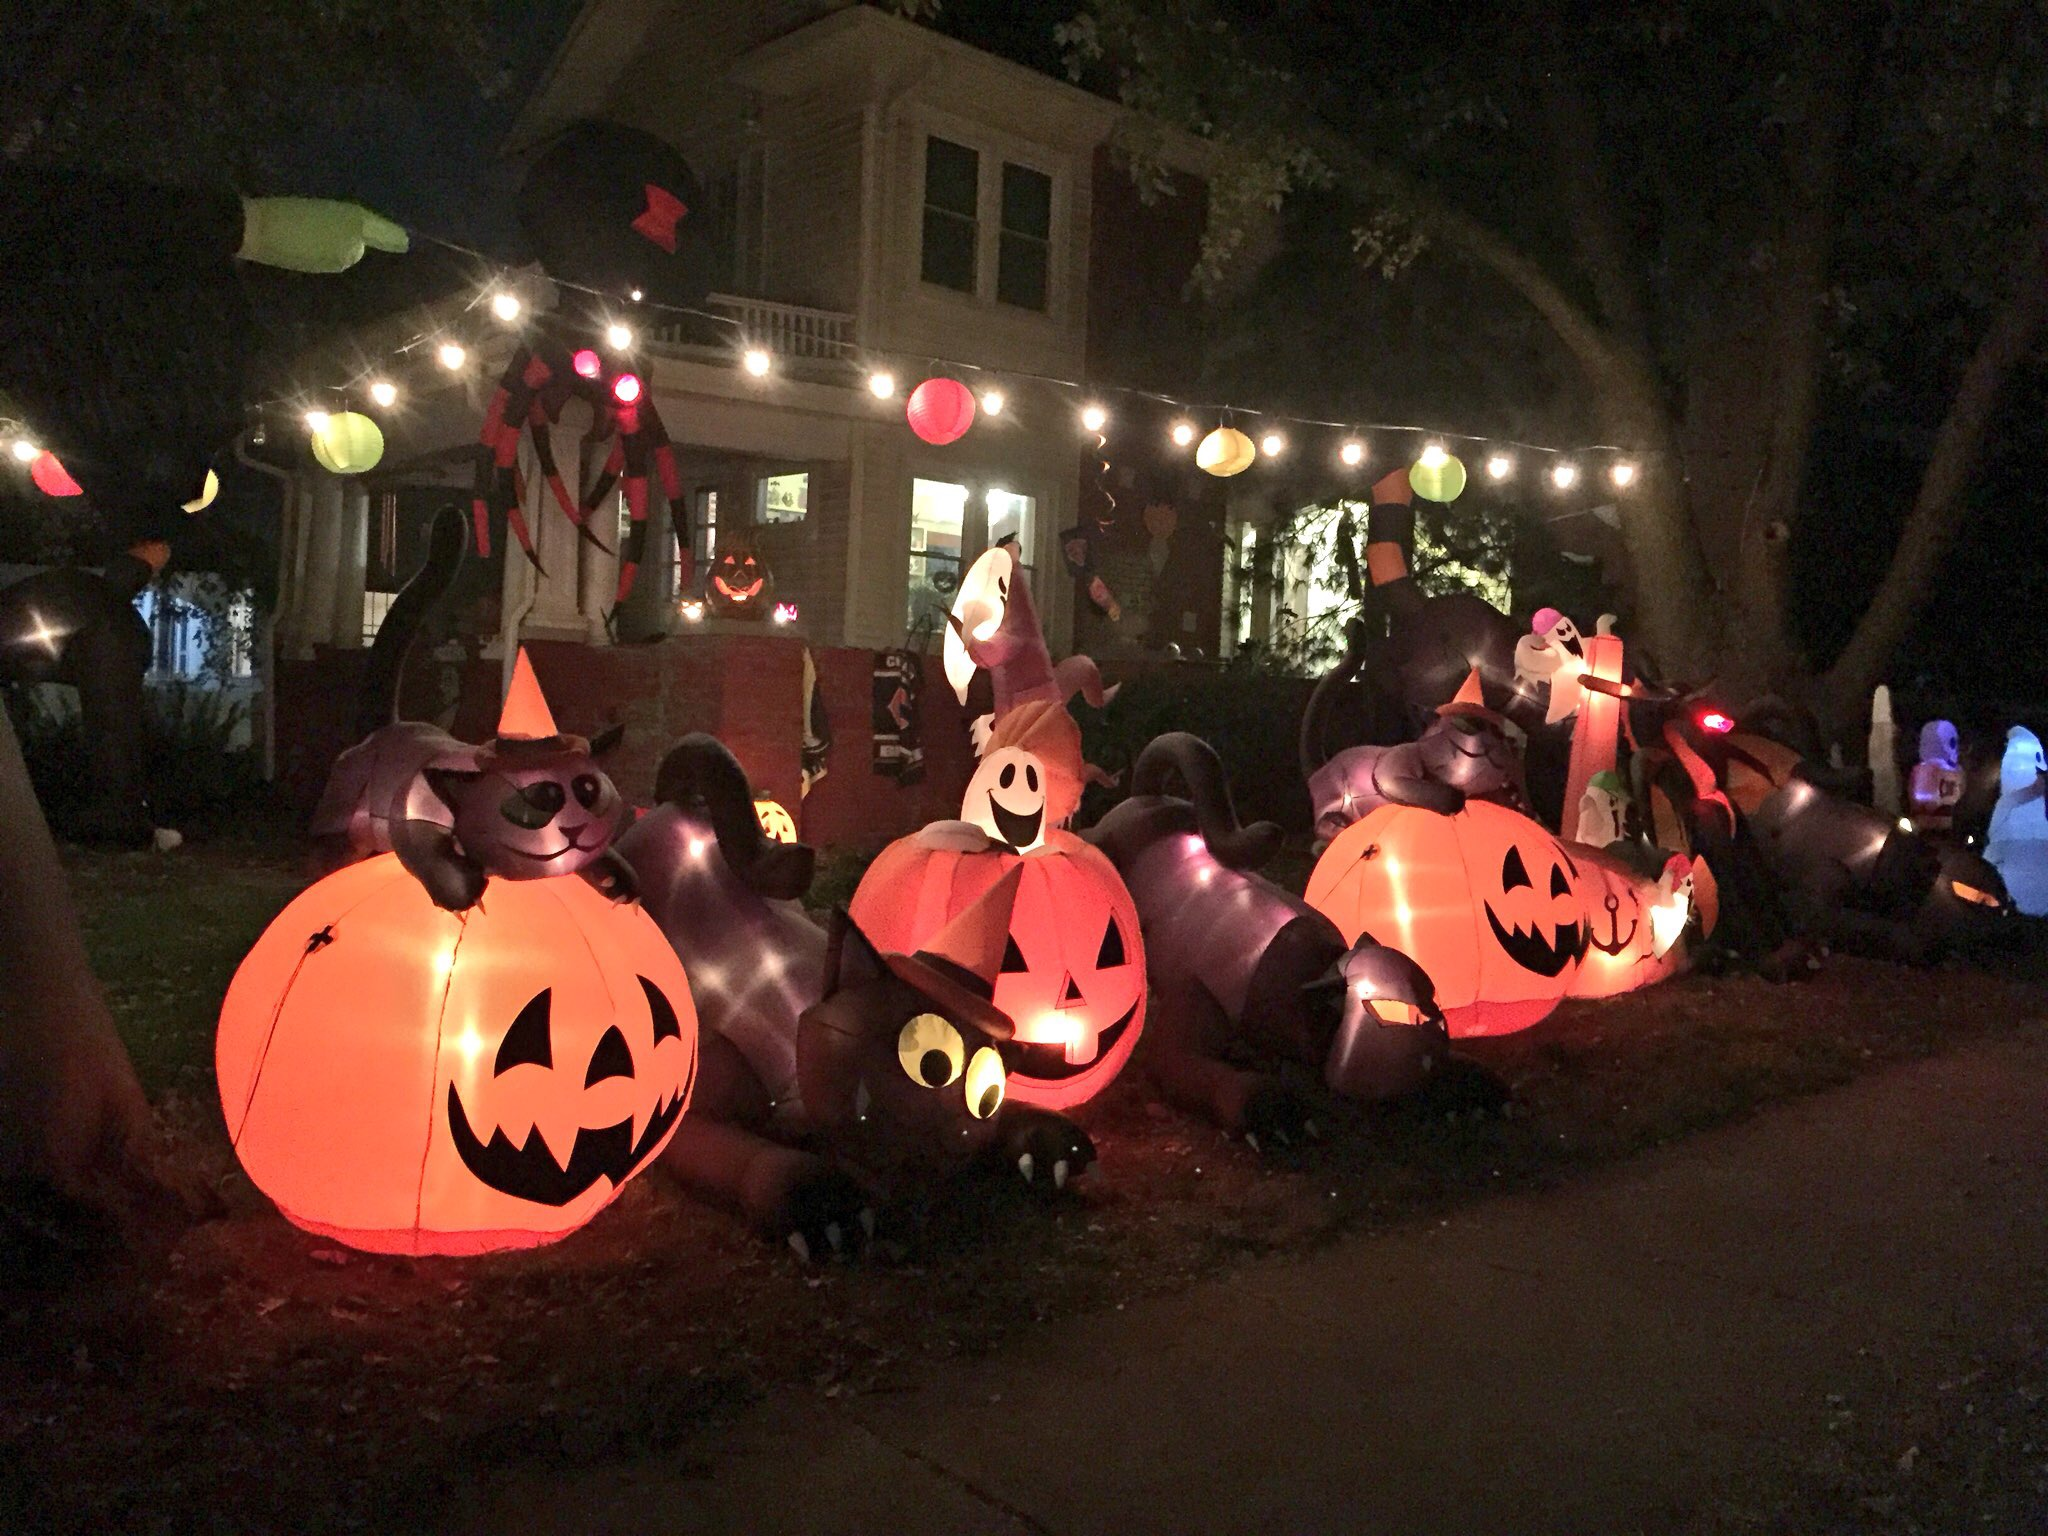 Wichita Halloween 2020 Broadview Halloween fire safety tips for your family